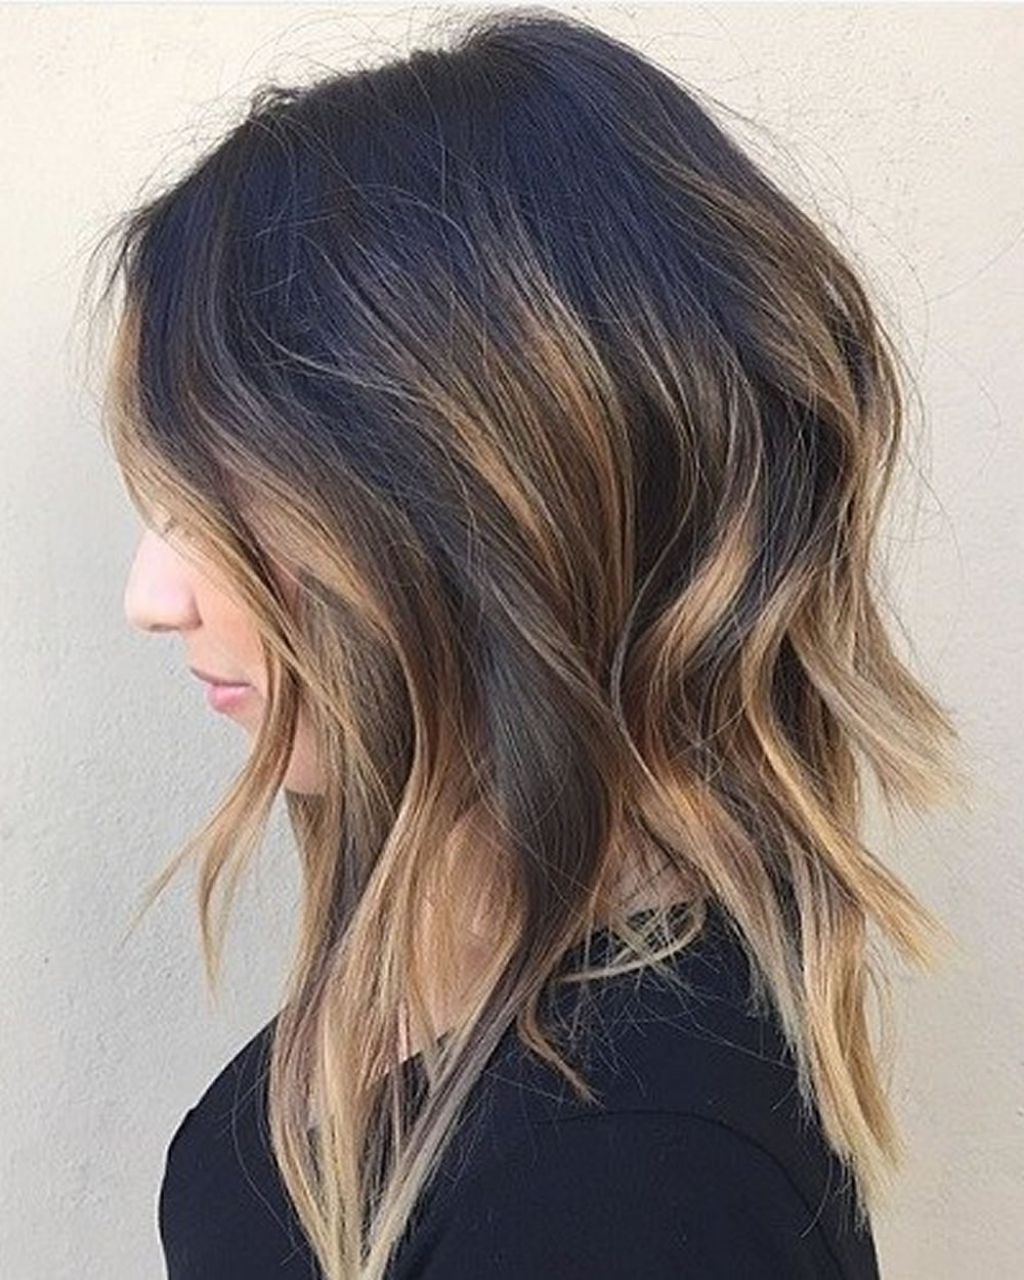 ? 24+ Inspirational Short Hairstyles With Highlights: Asymmetrical Within Asymmetrical Short Hairstyles (View 16 of 25)